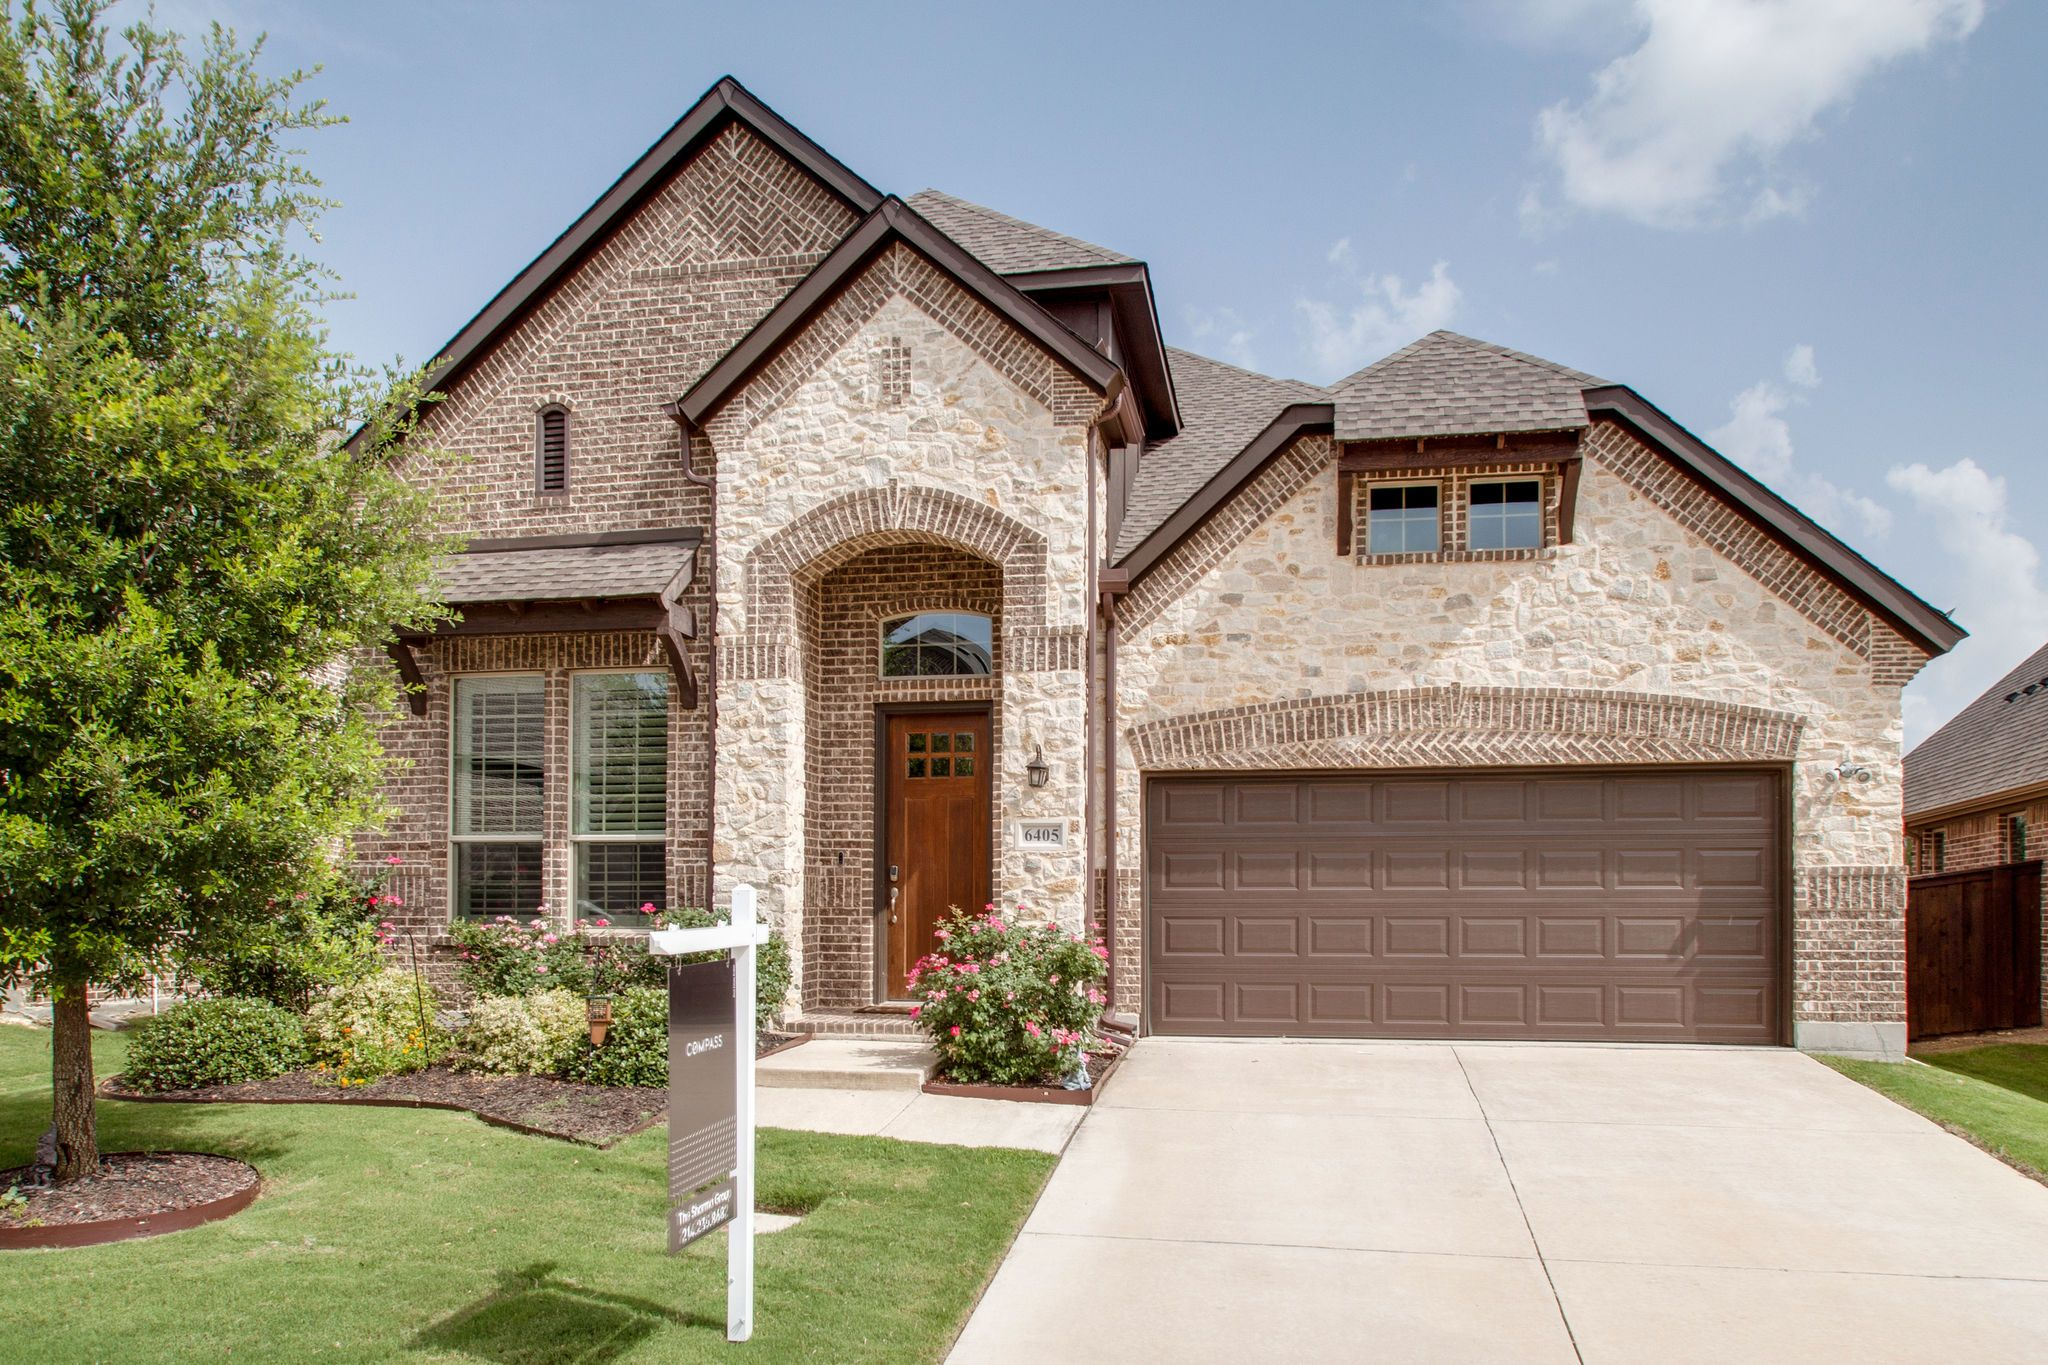 Homes for sale in Flower Mound FlowerMound TX Dfw real